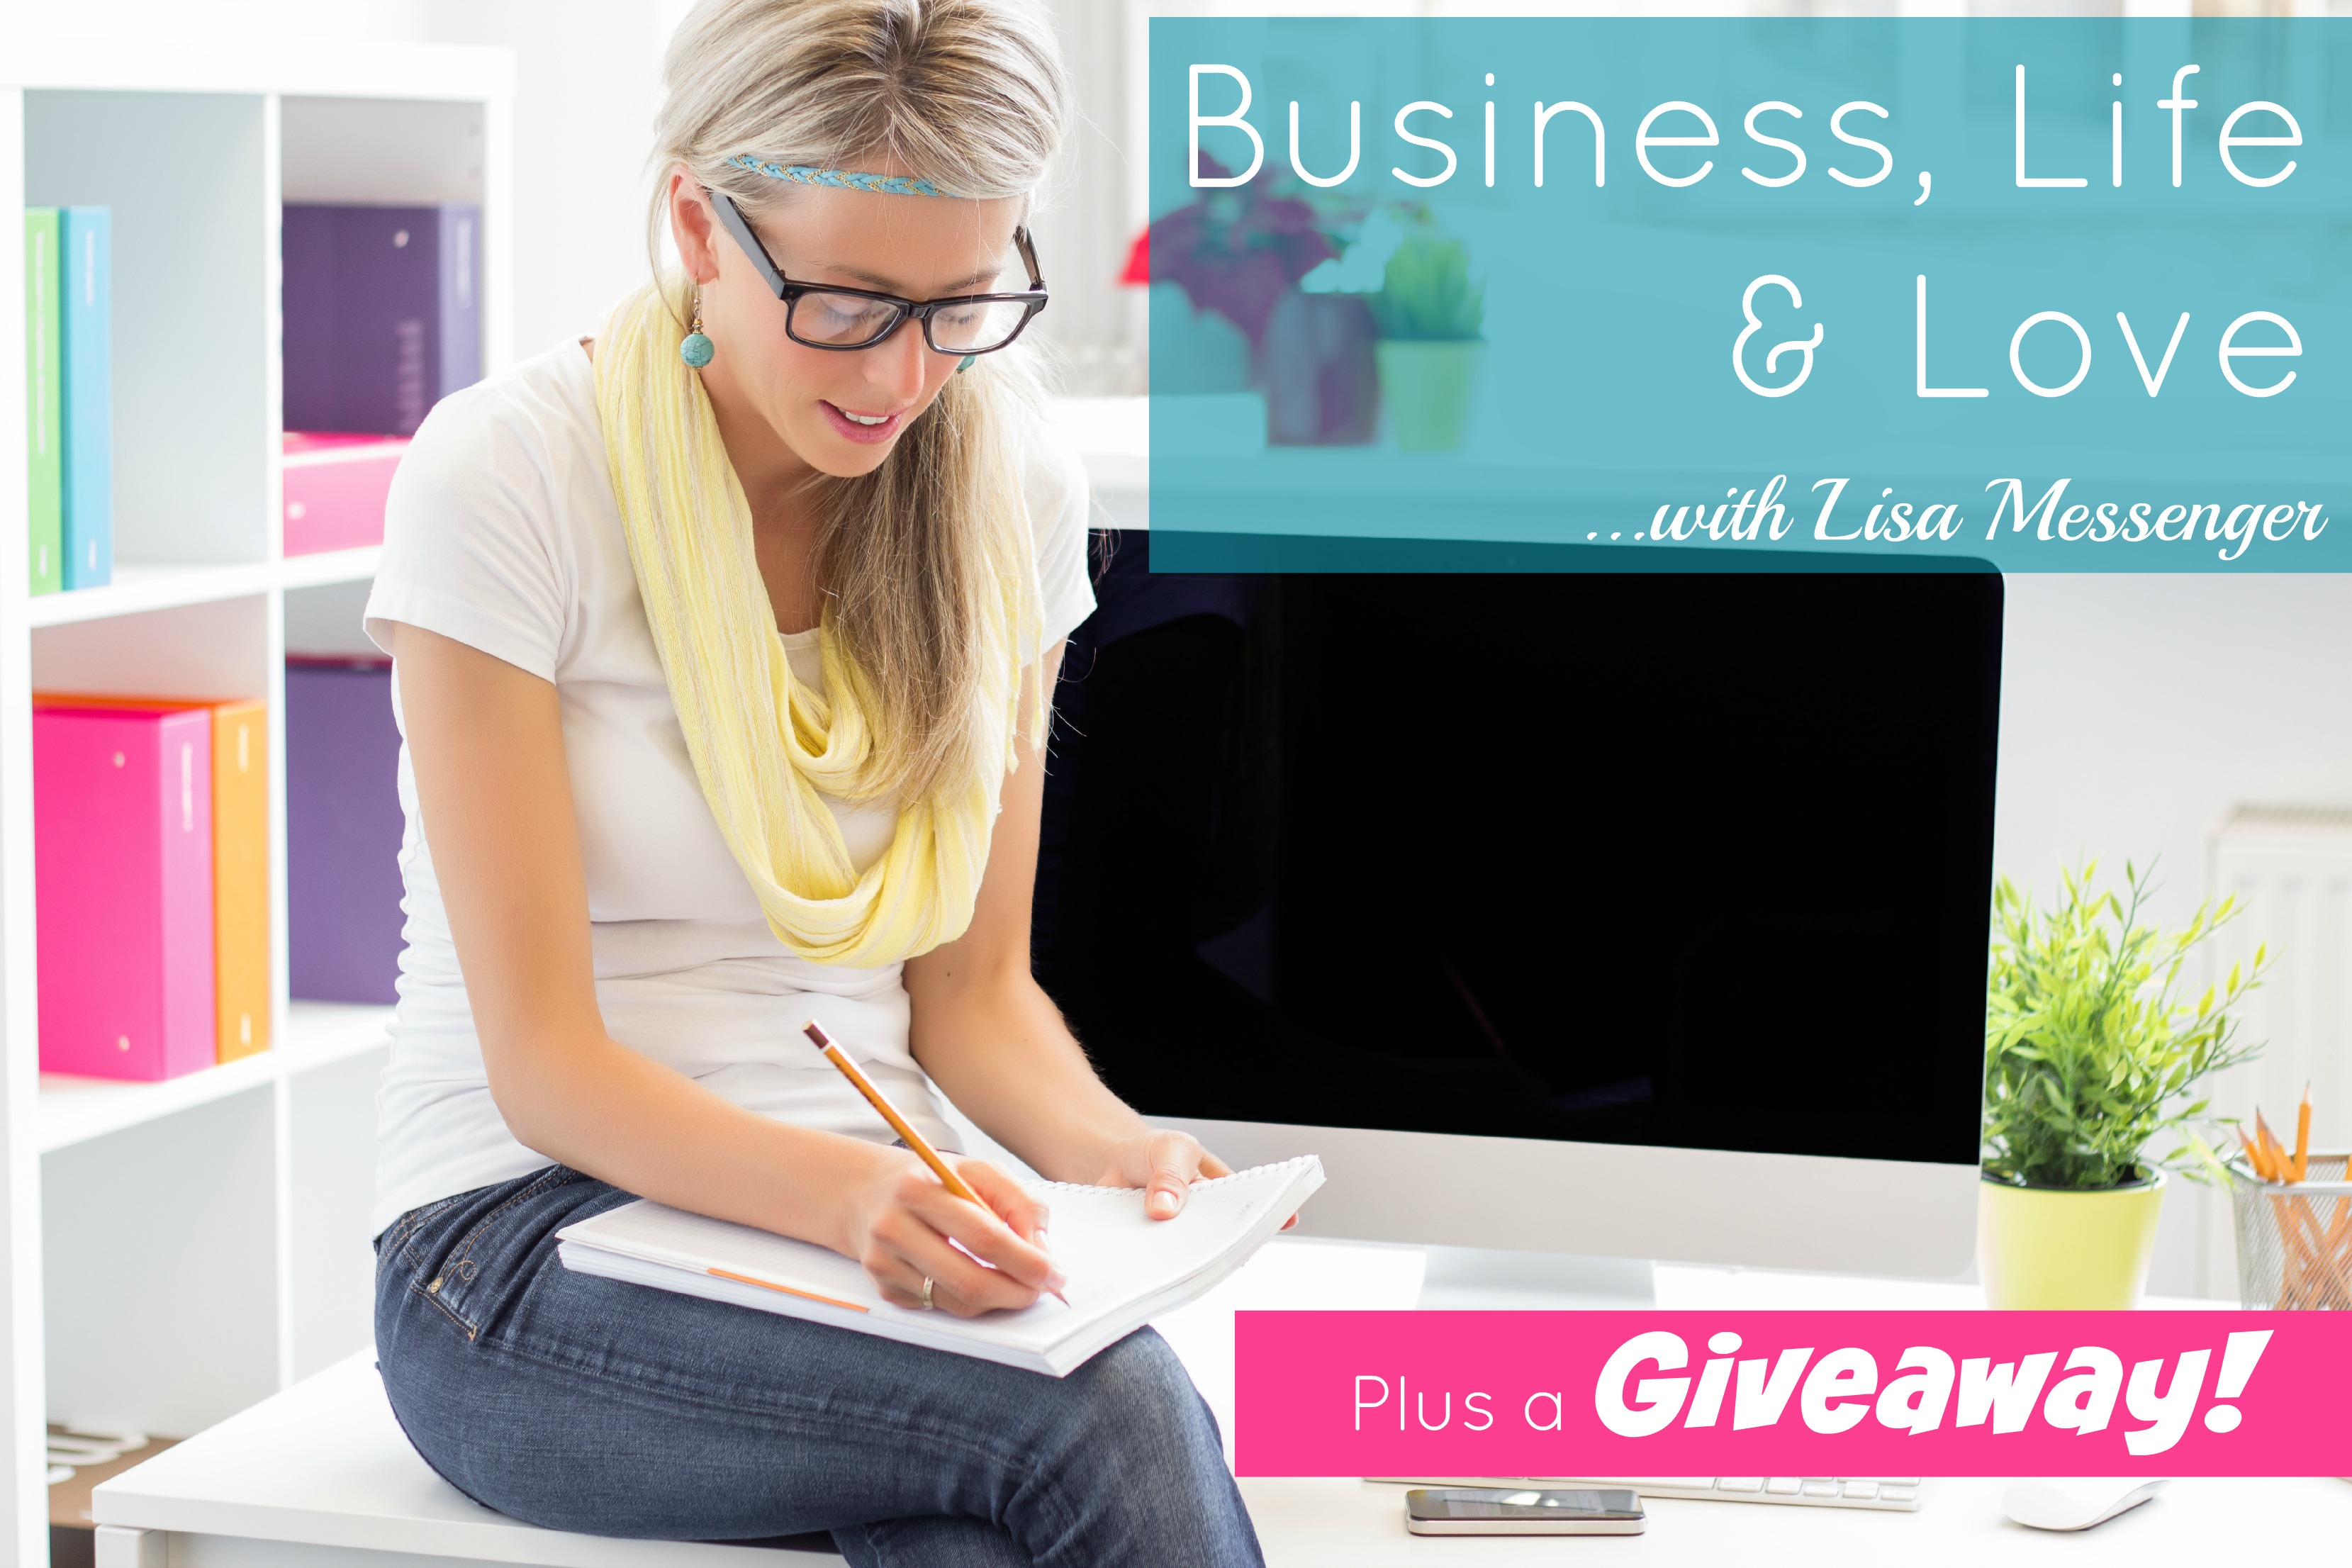 Business, life and love with Lisa Messenger + a giveaway!